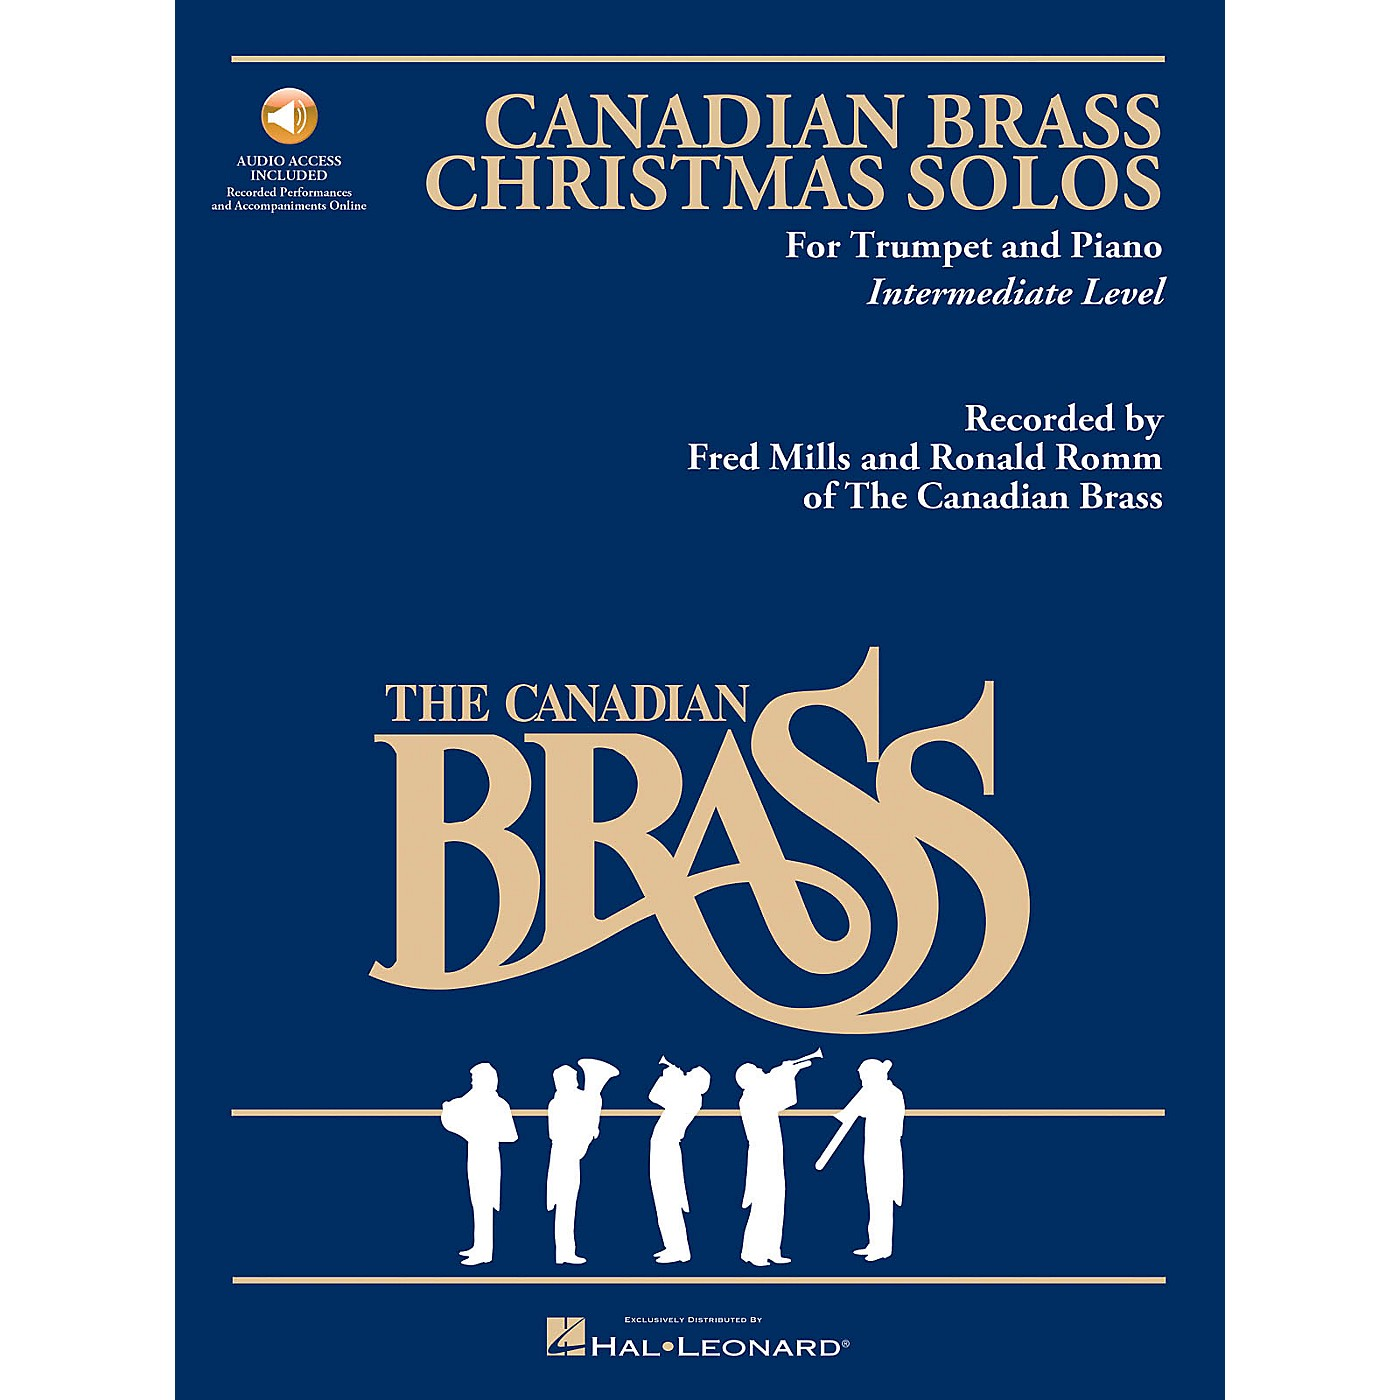 Hal Leonard The Canadian Brass Christmas Solos Brass Series Book Audio Online thumbnail